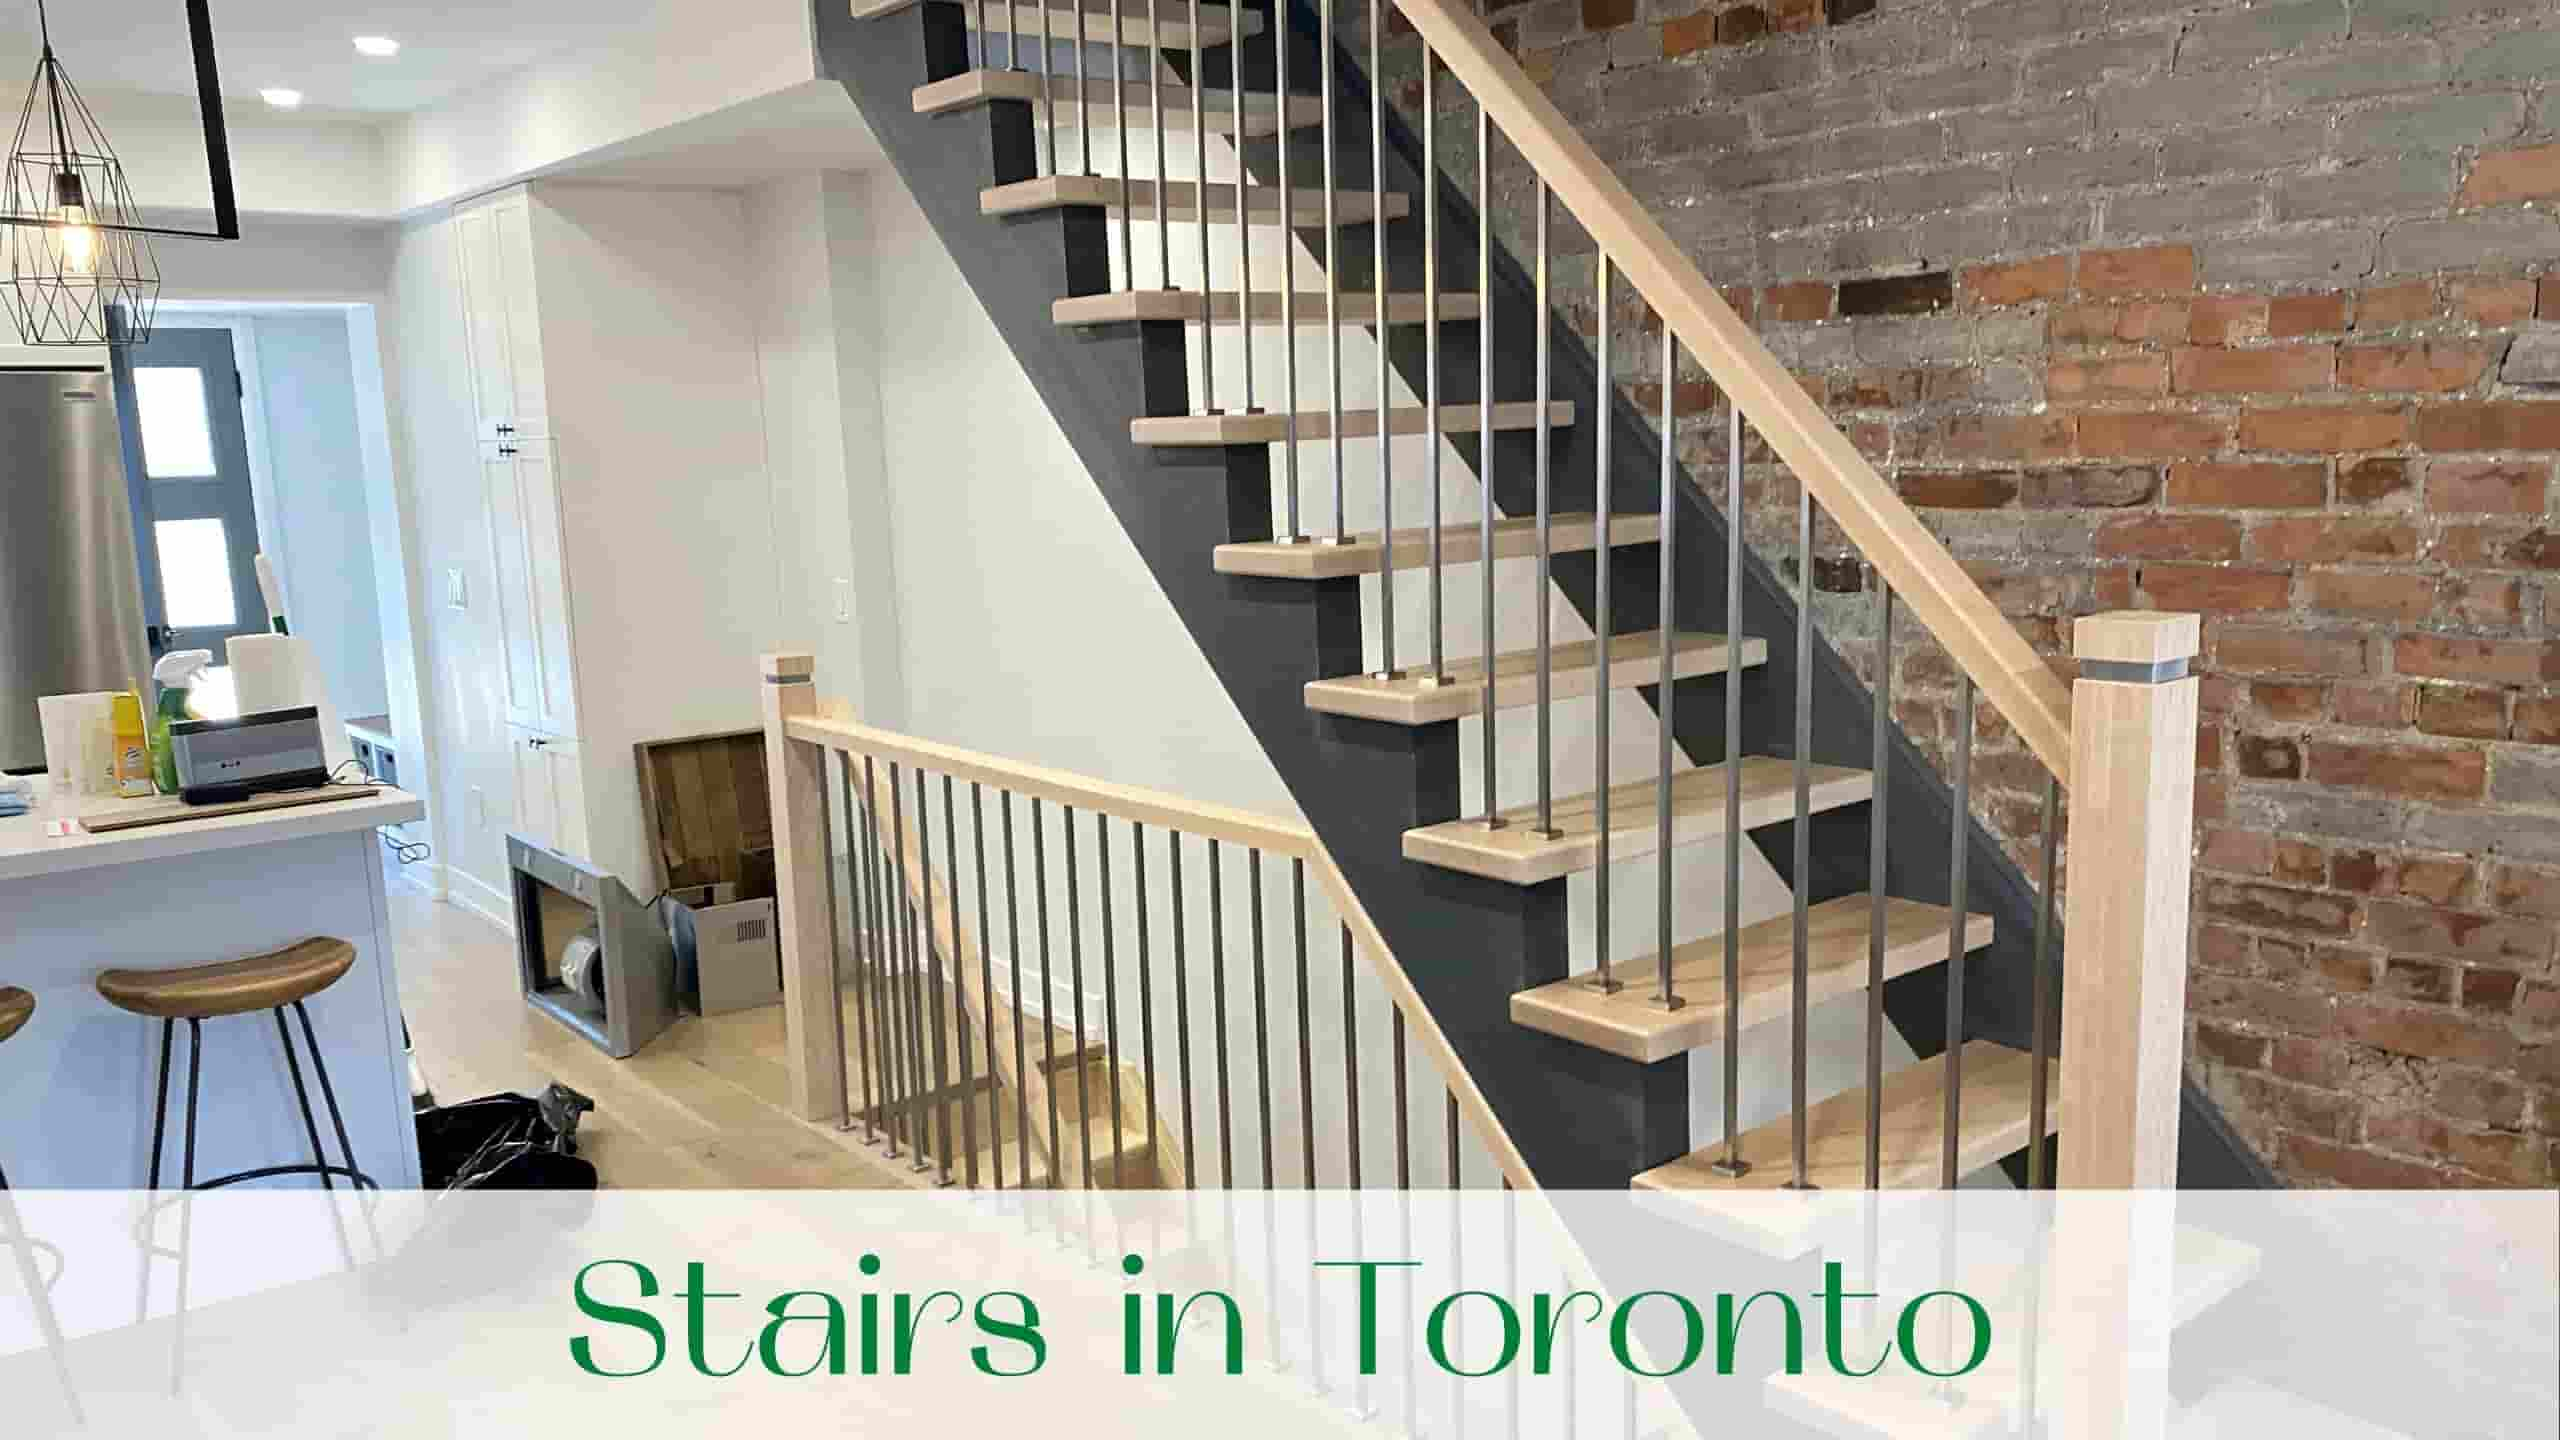 image-stairs-in-toronto